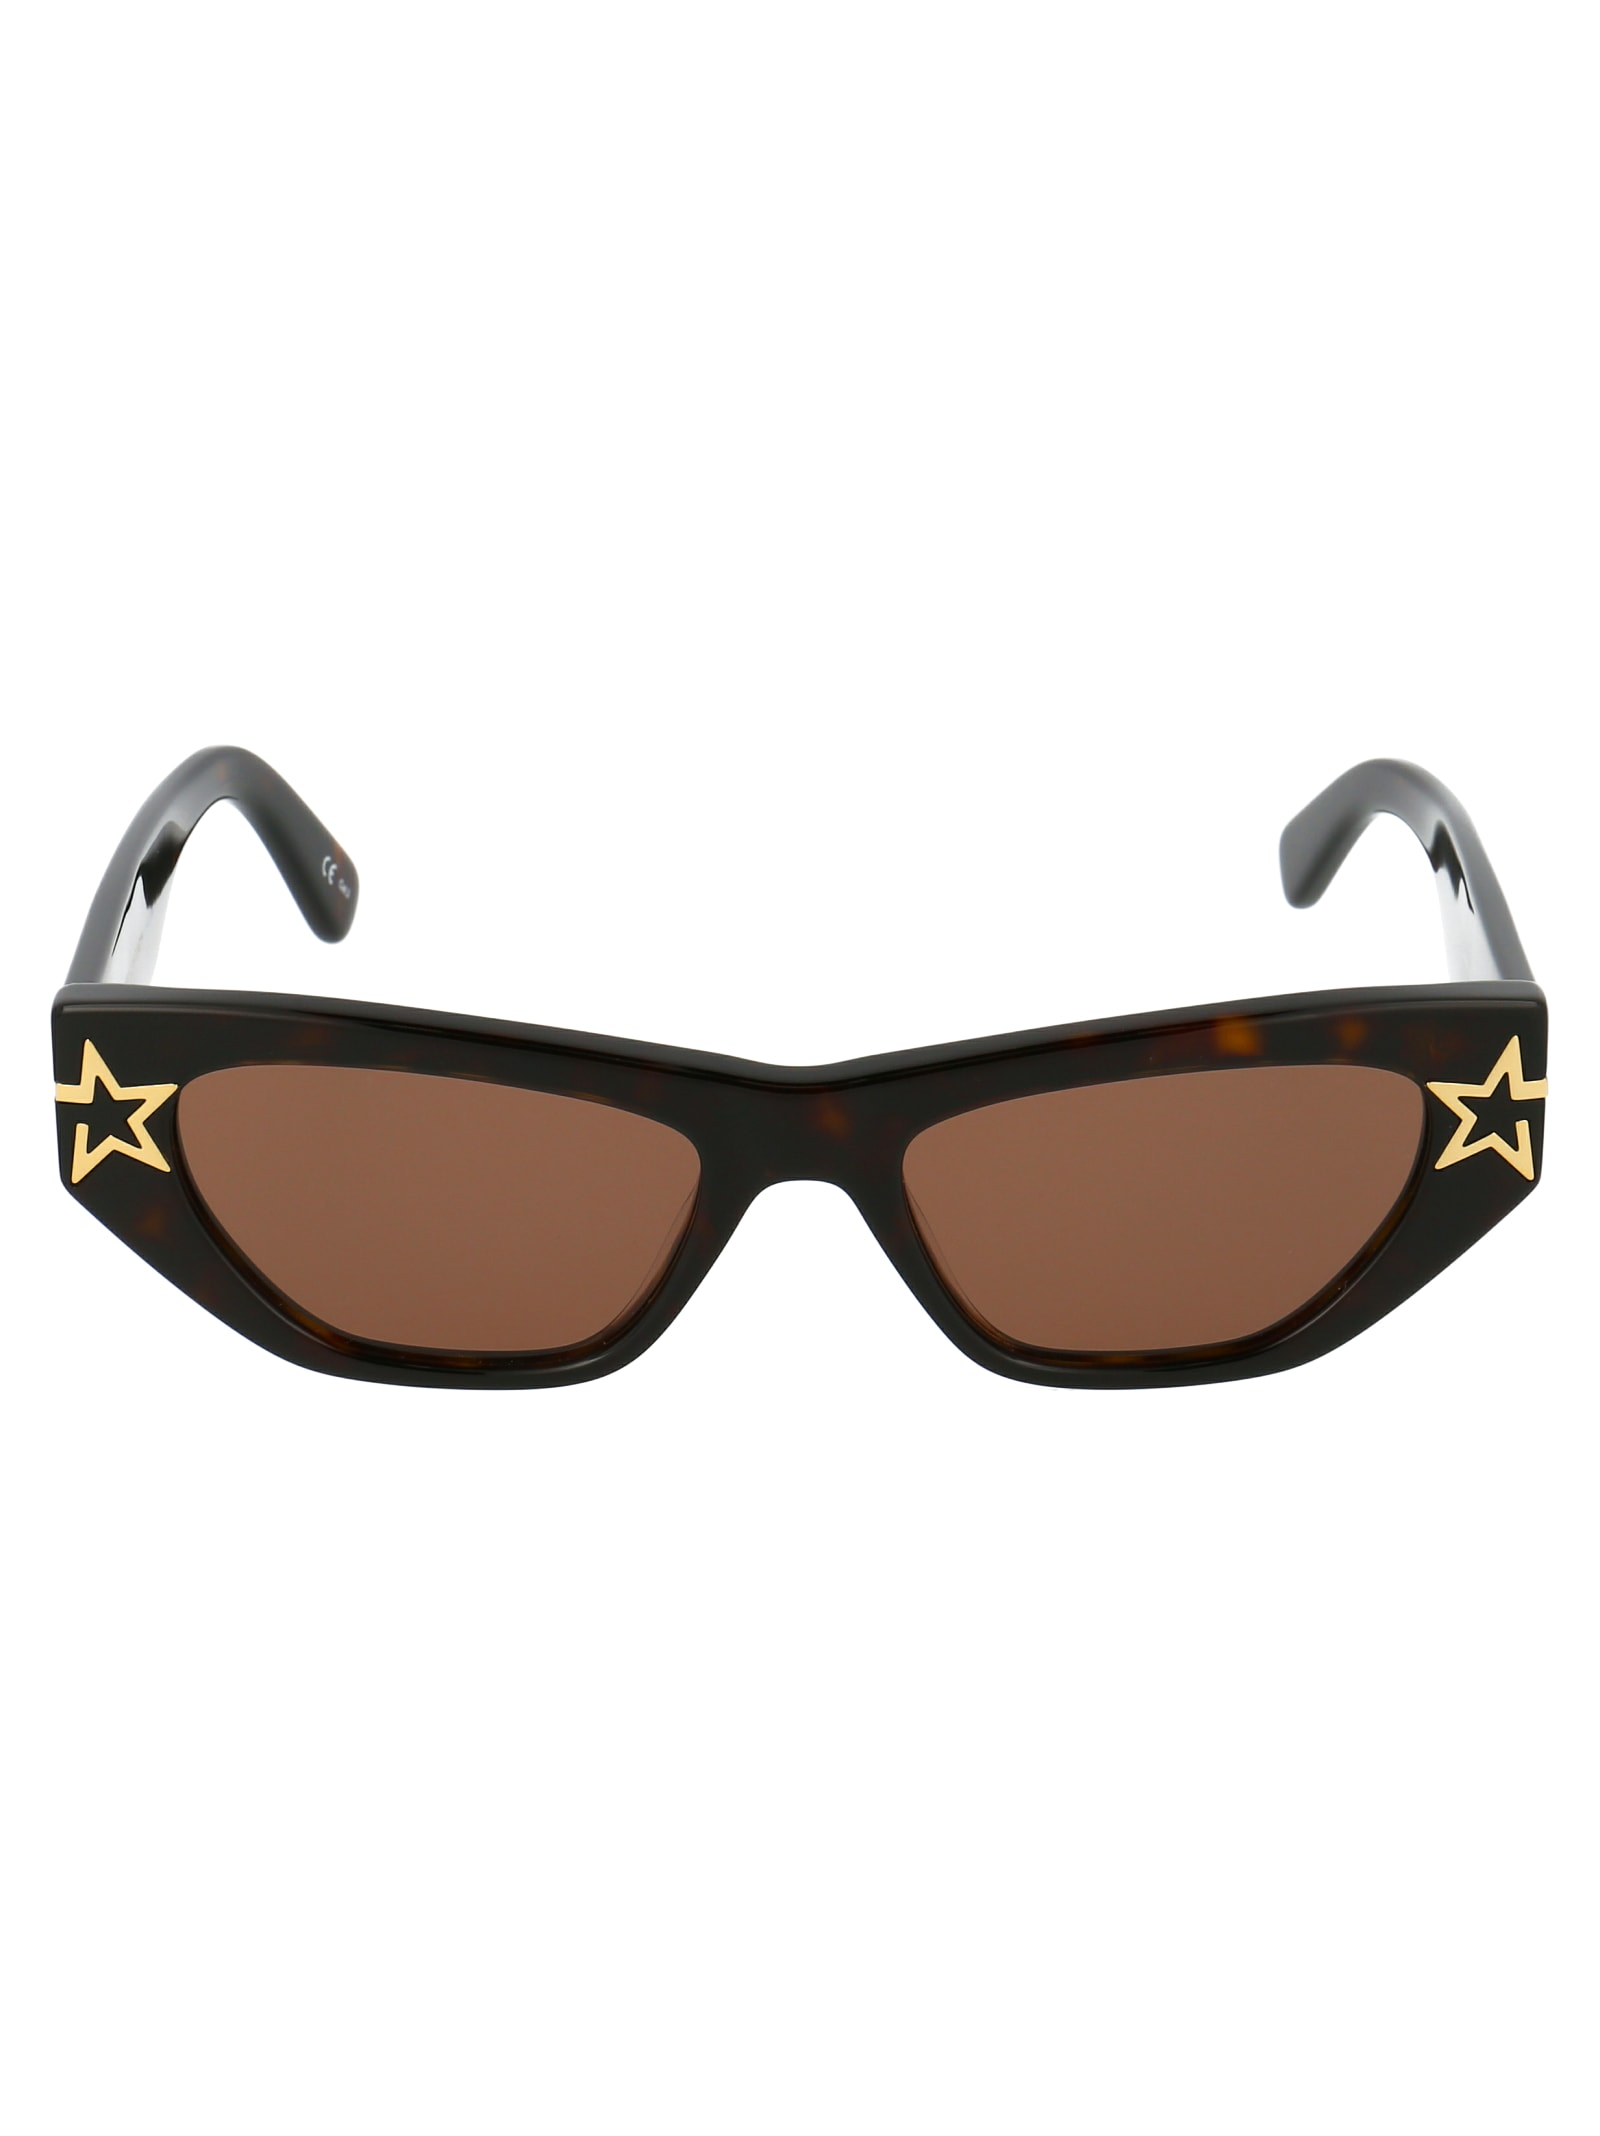 Sc0209s Sunglasses